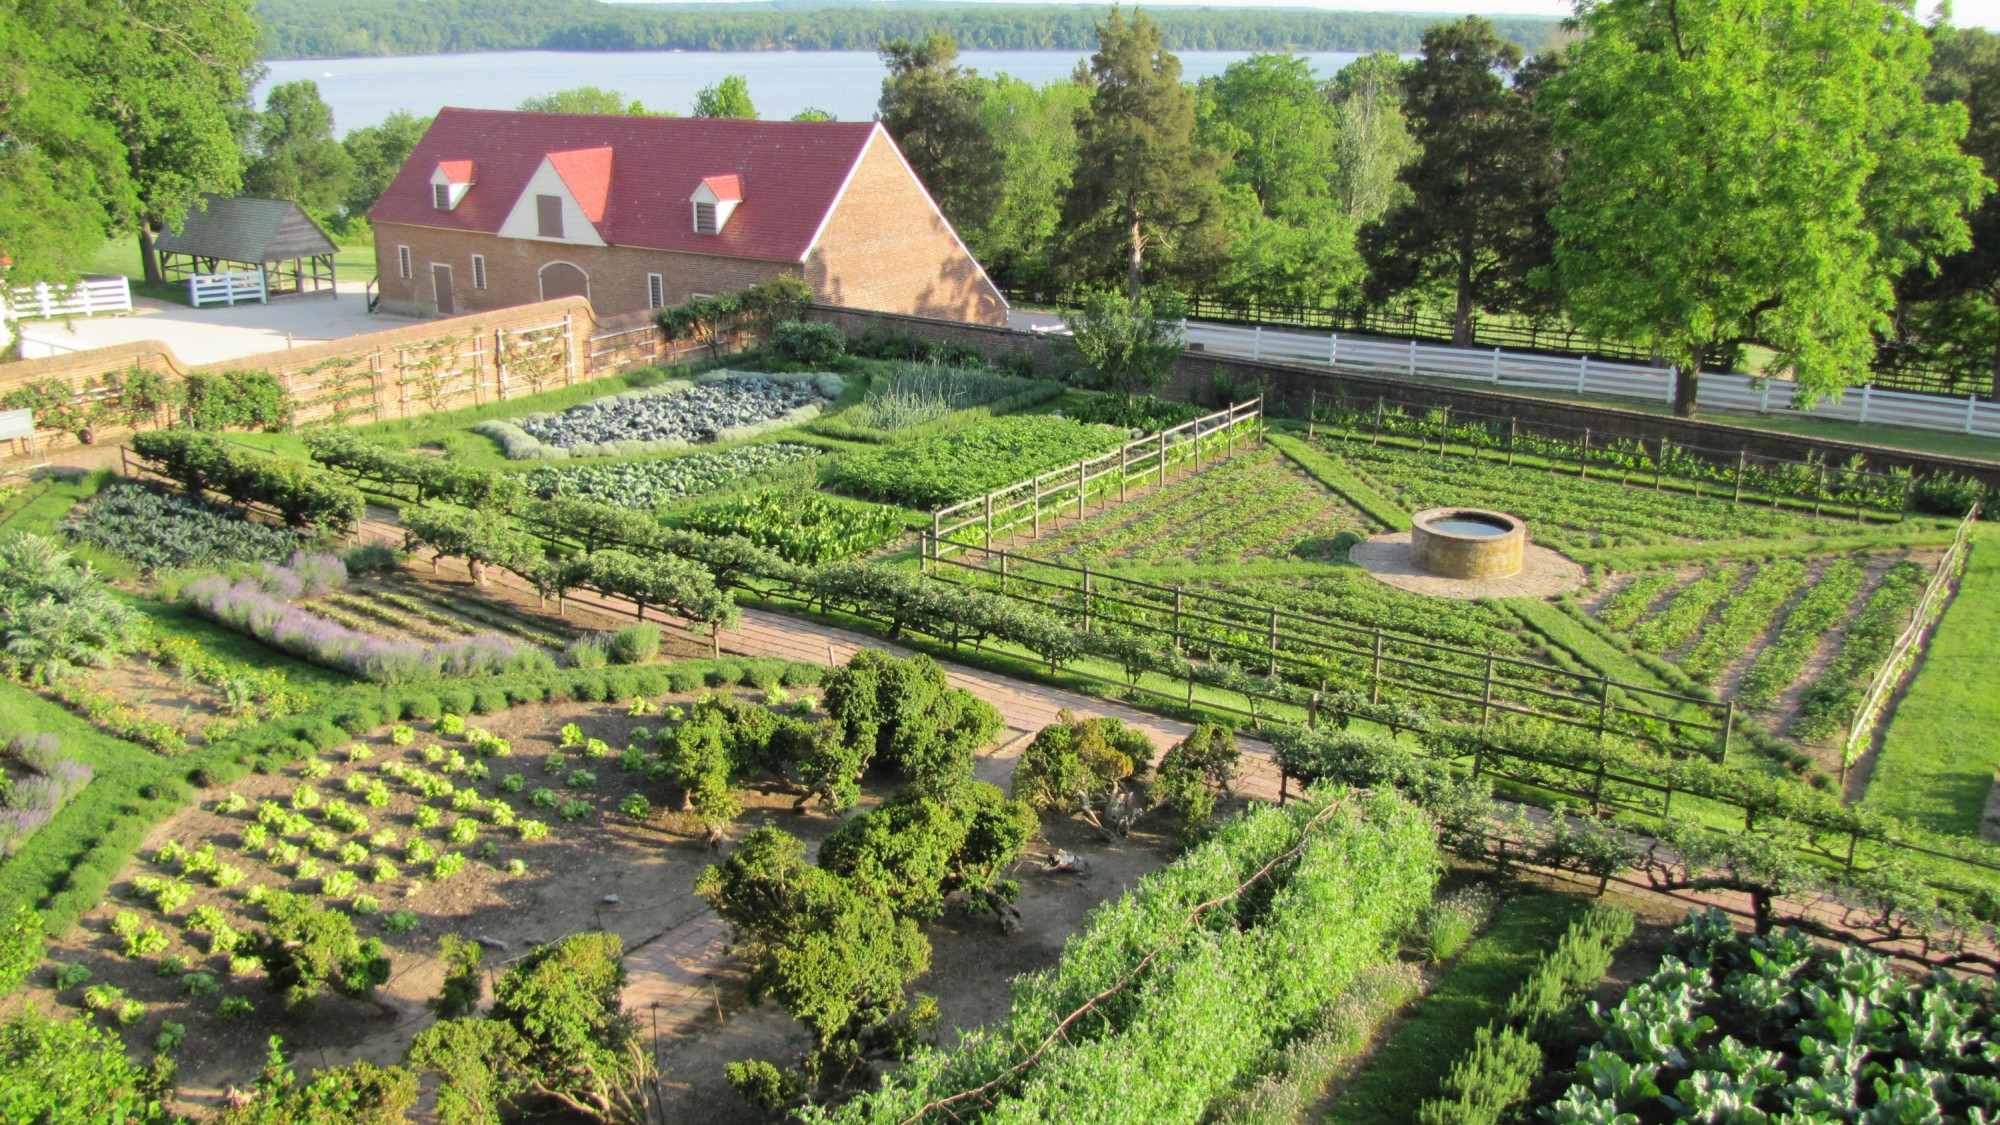 Terrace Kitchen Garden The Four Gardens At Mount Vernon A George Washingtons Mount Vernon